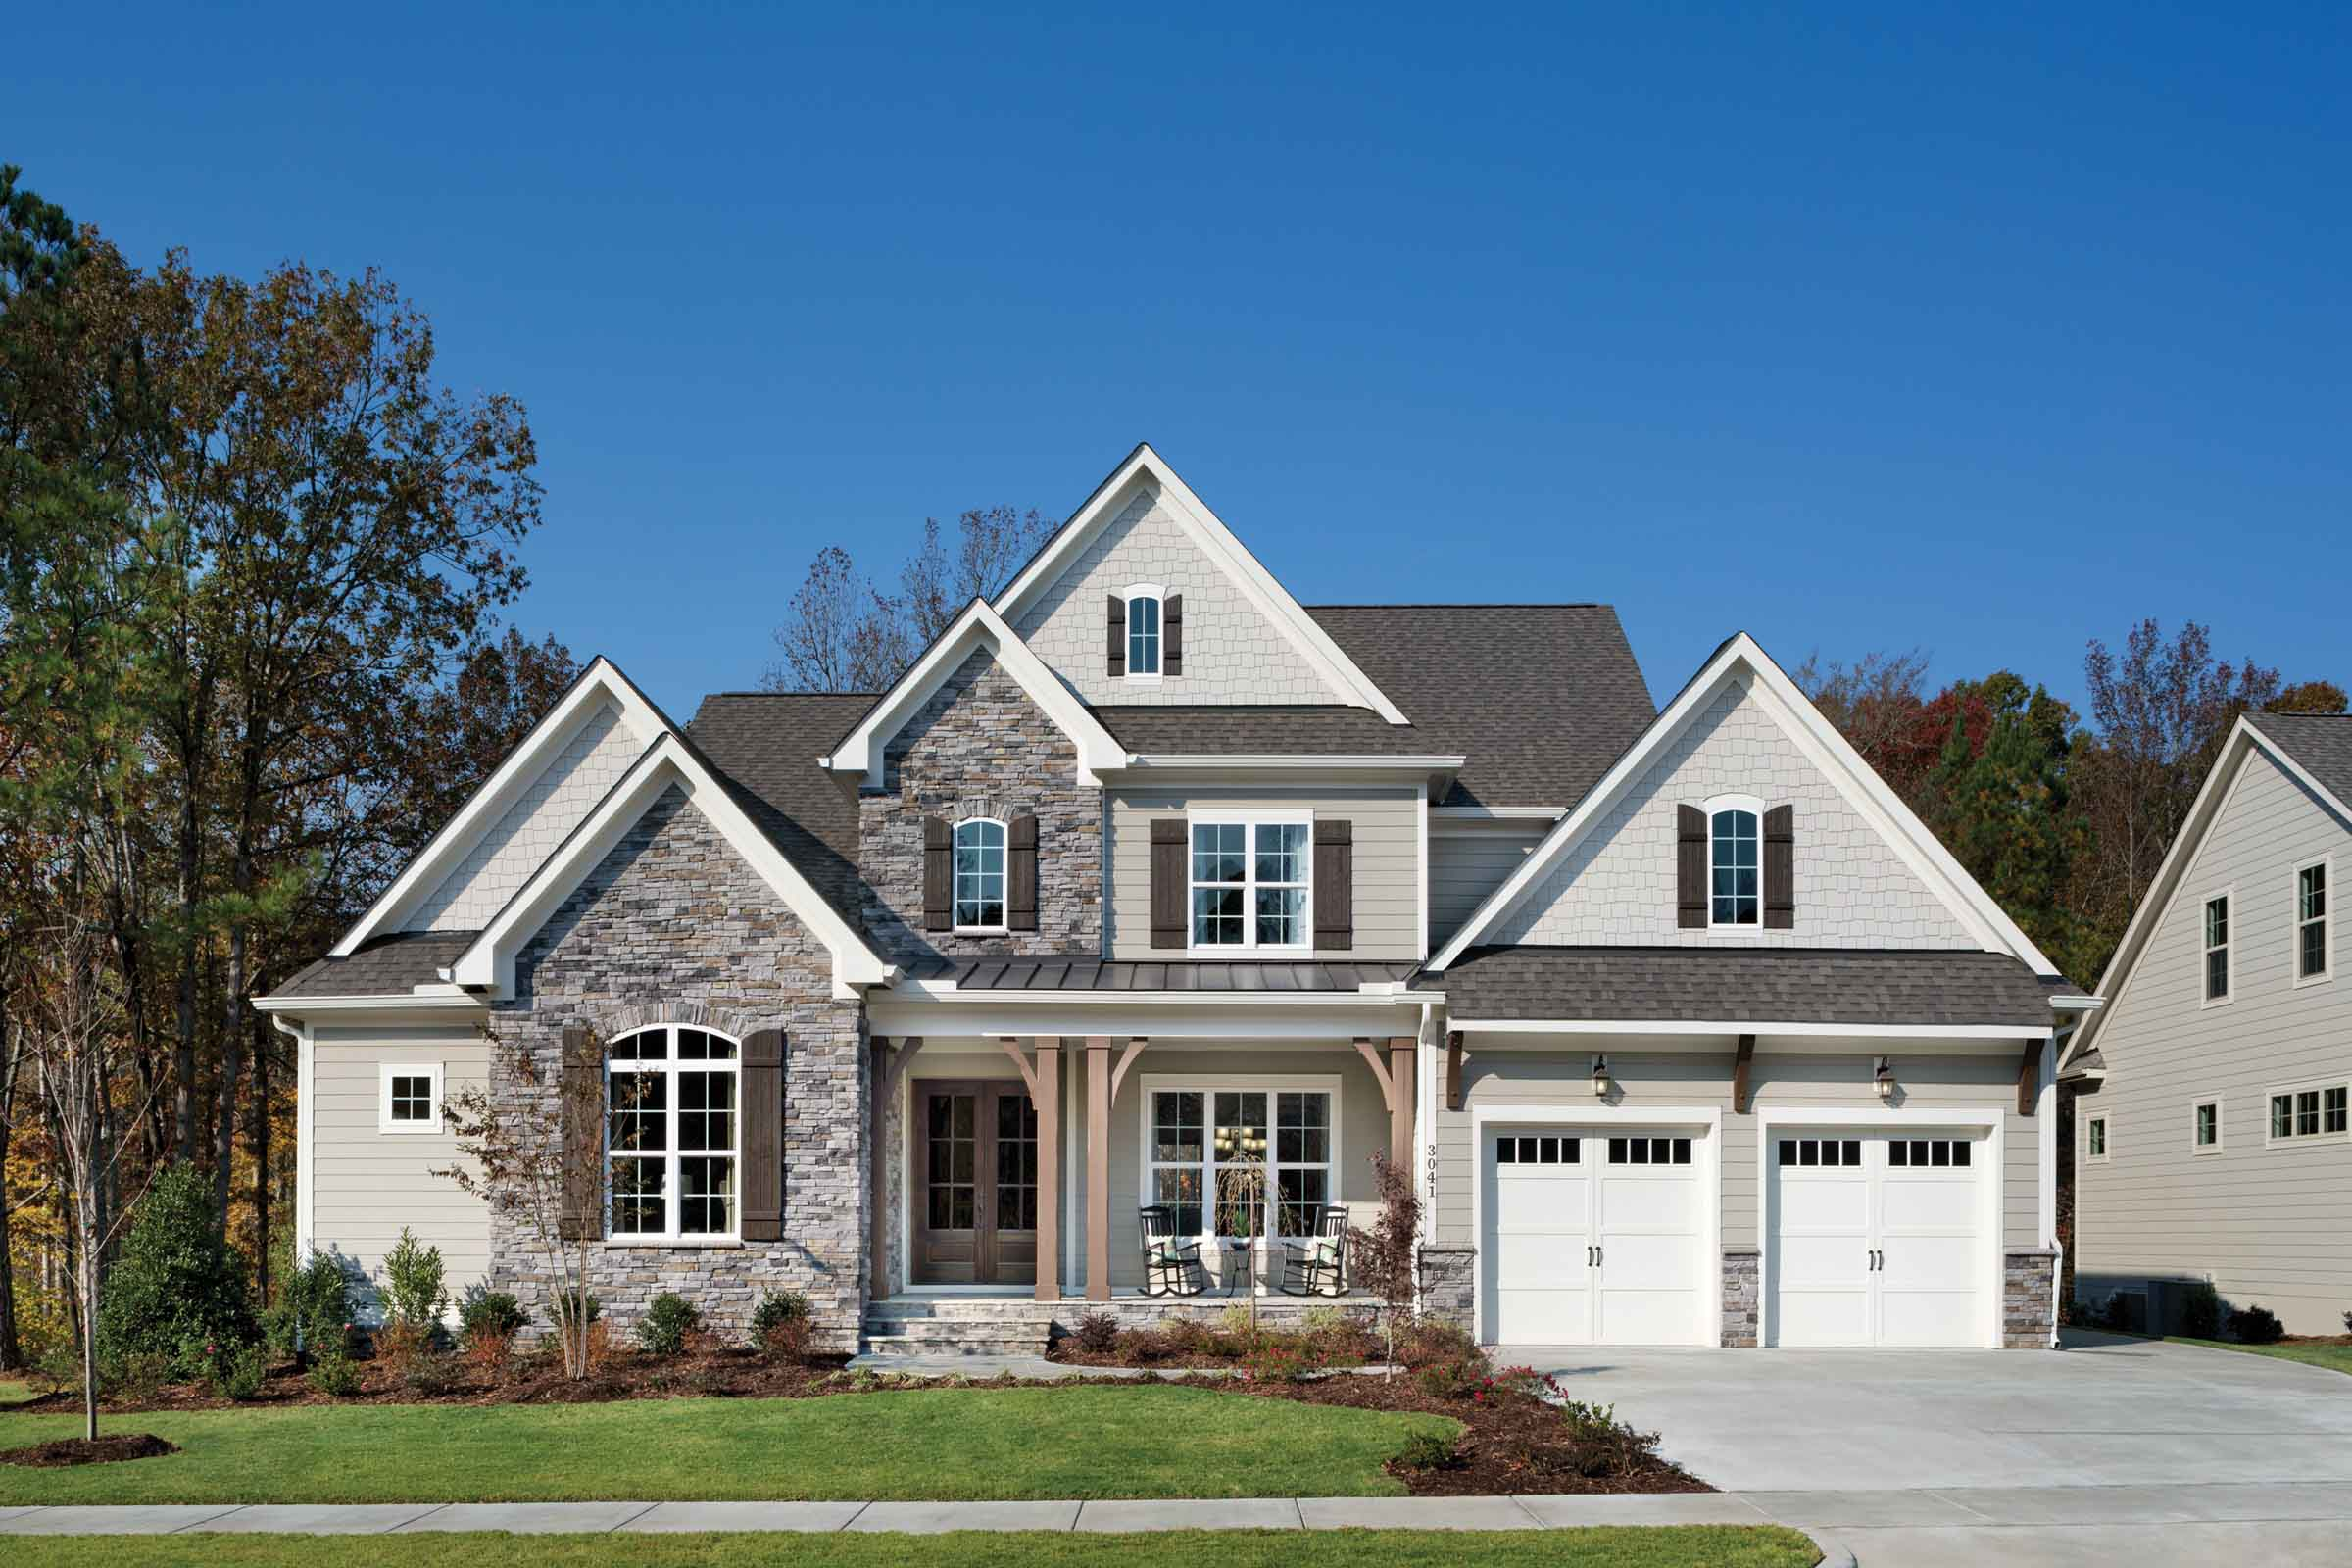 Golf course homes for sale near tampa at southern hills for Southern estates homes